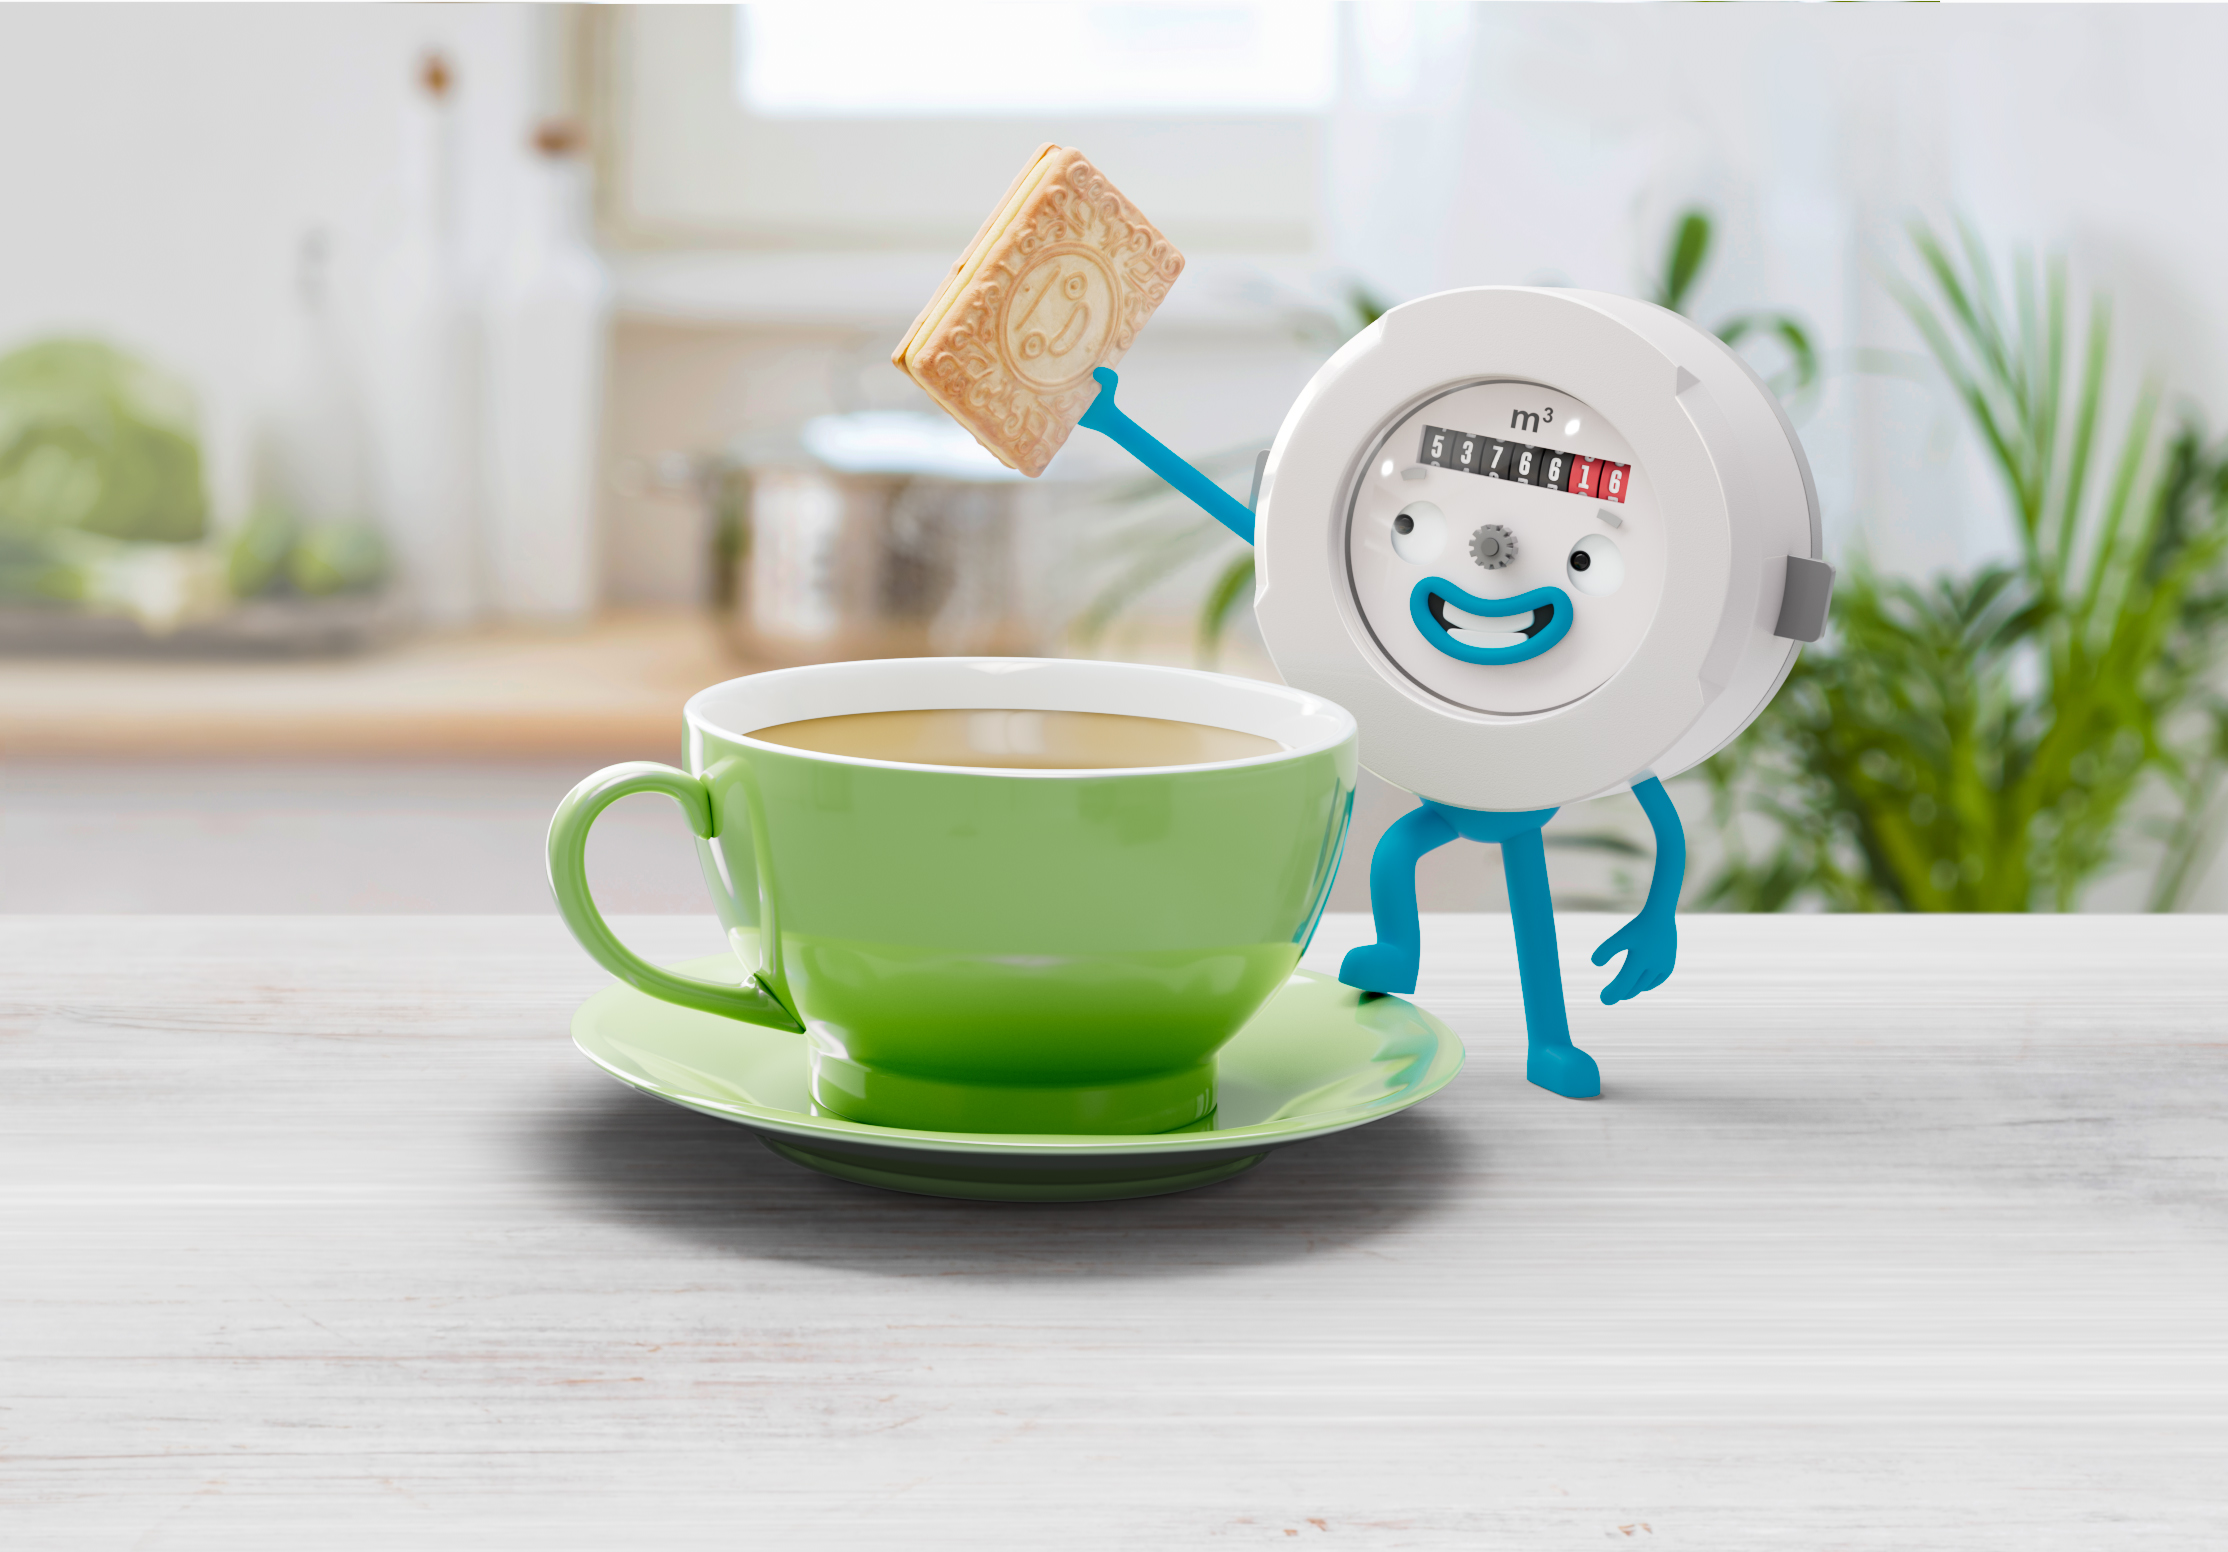 Peter the Meter with a cup of tea